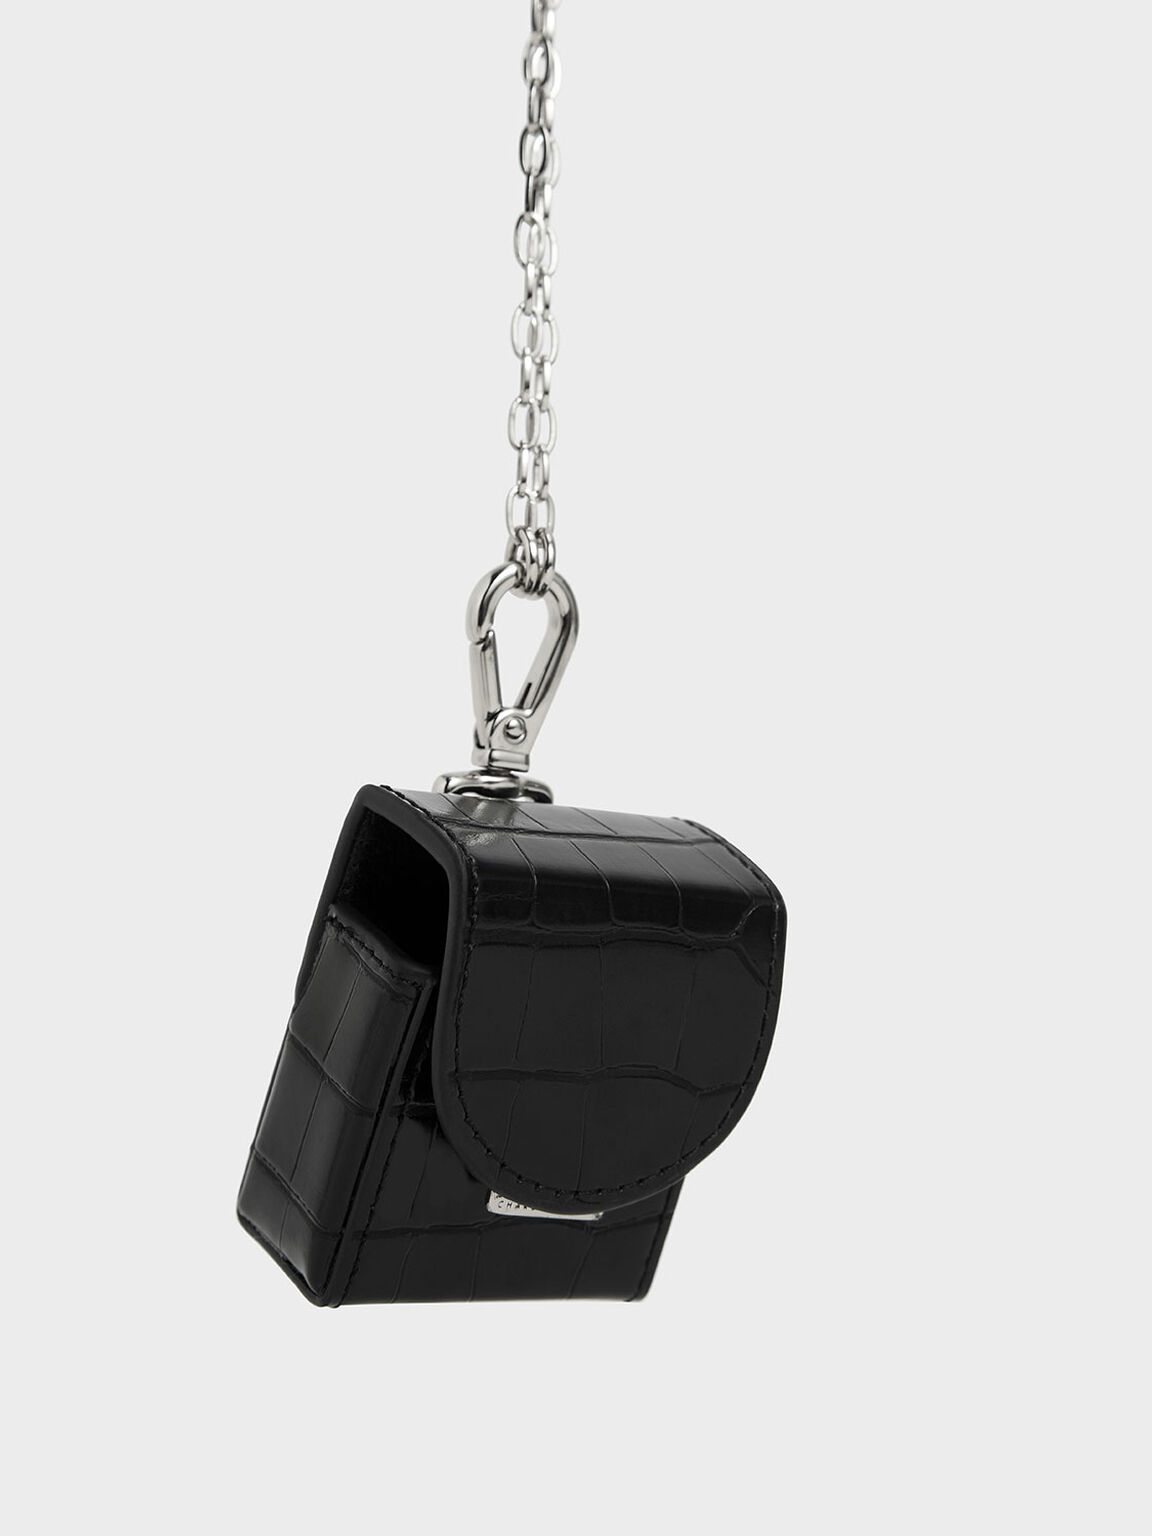 Croc-Effect AirPods Case Necklace, Black, hi-res